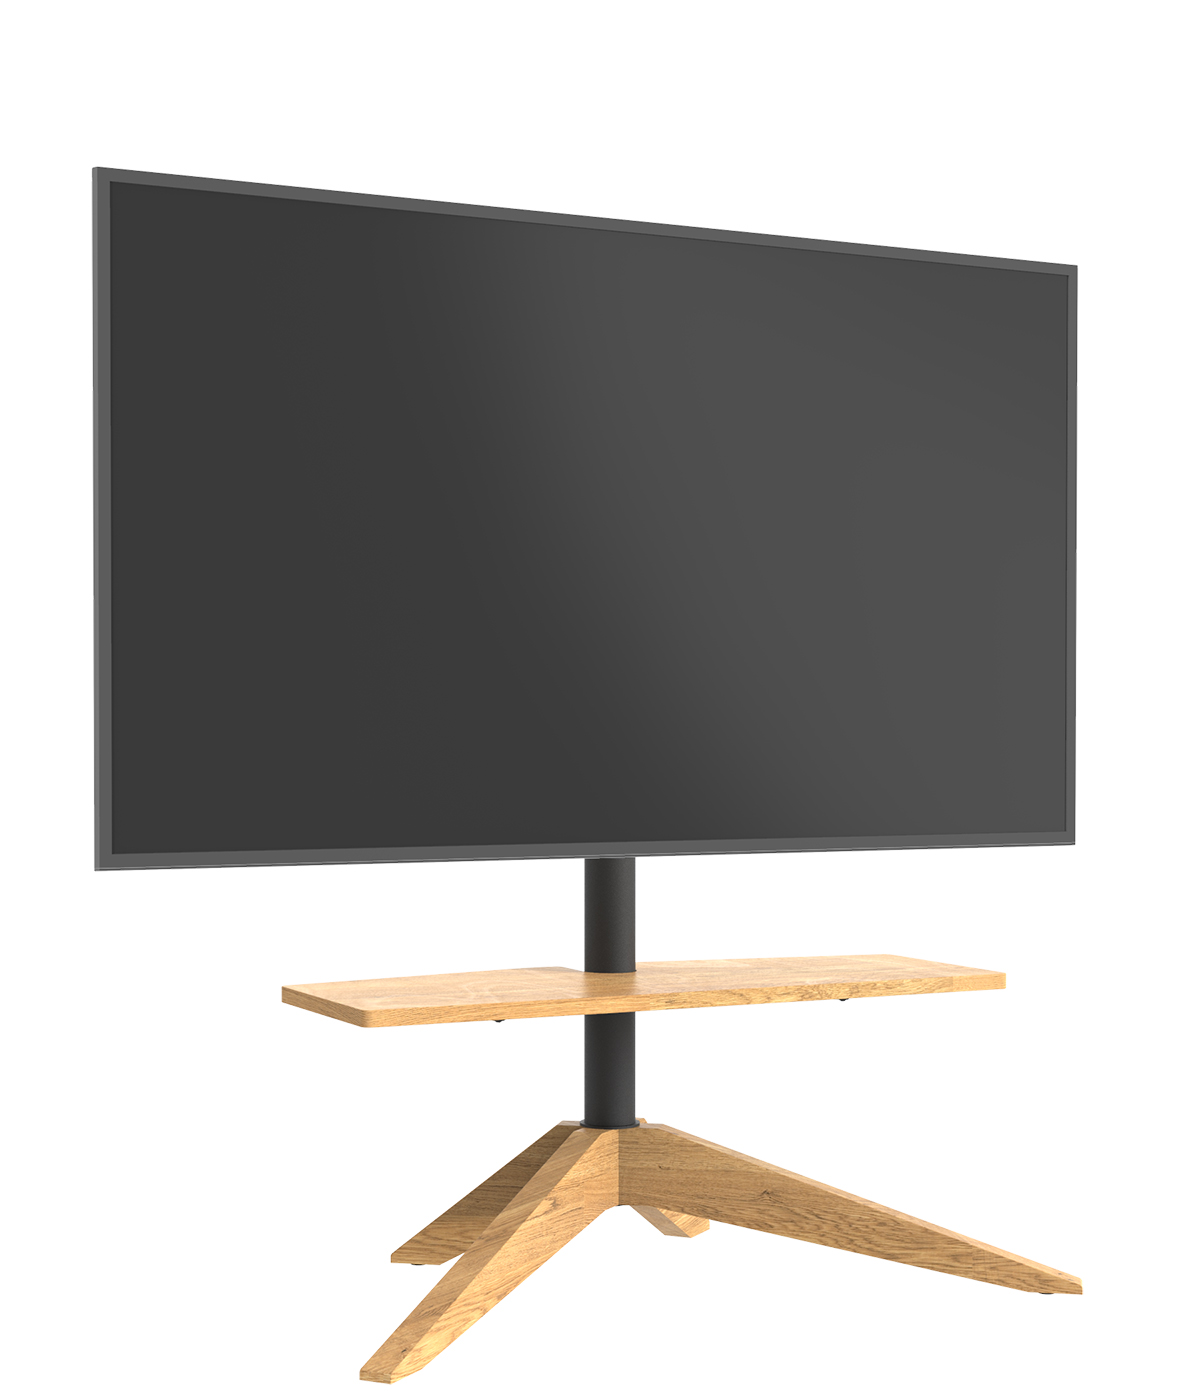 Cavus Tv vloerstandaard Cross Oak VESA 100x200